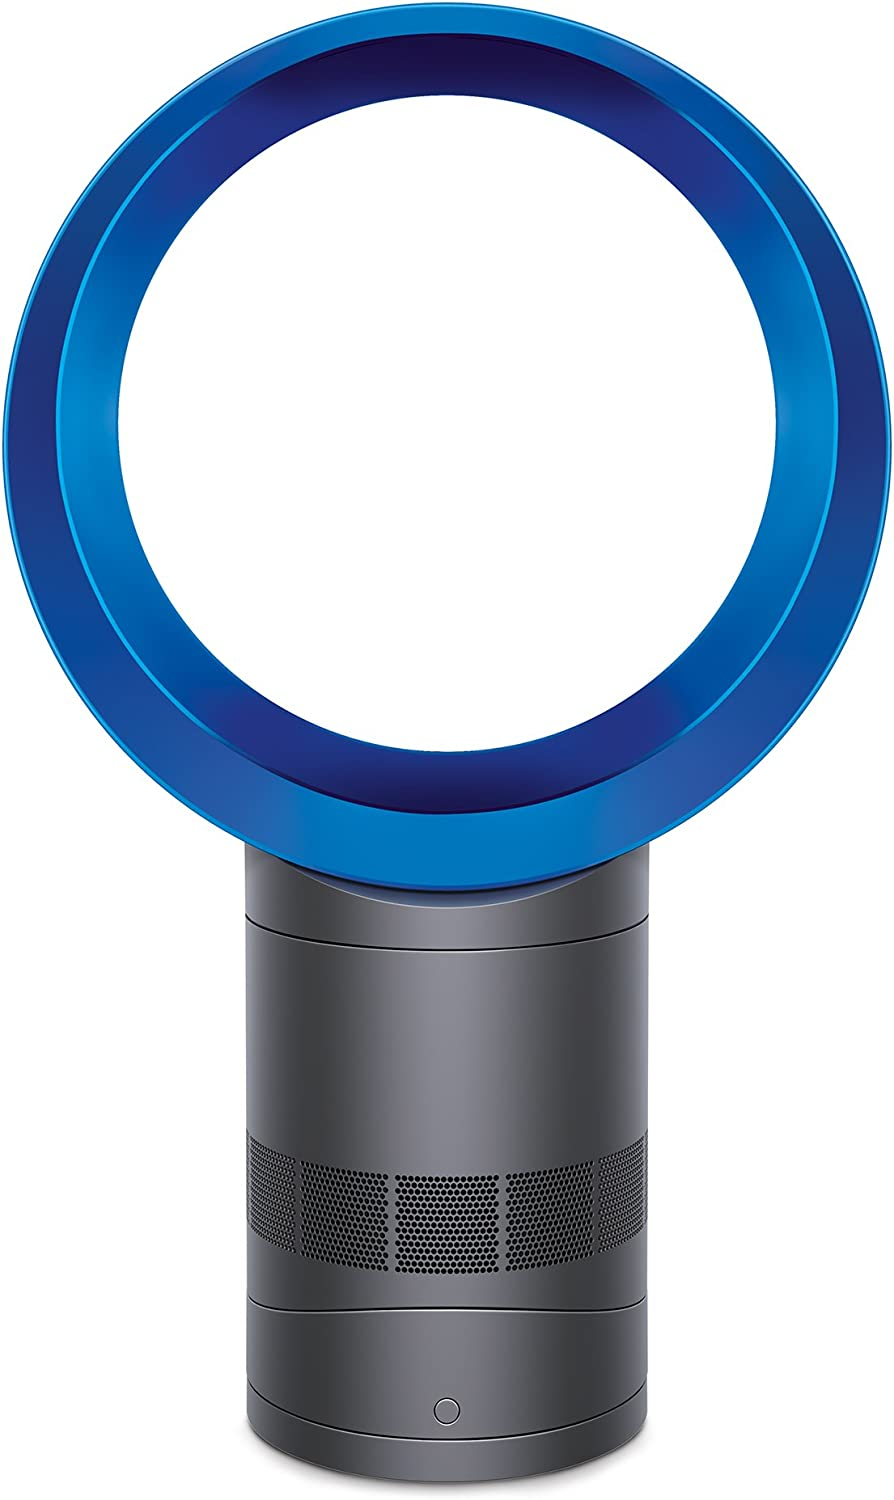 Dyson Air Multiplier AM06 Table Fan, 10 Inches, Iron Blue